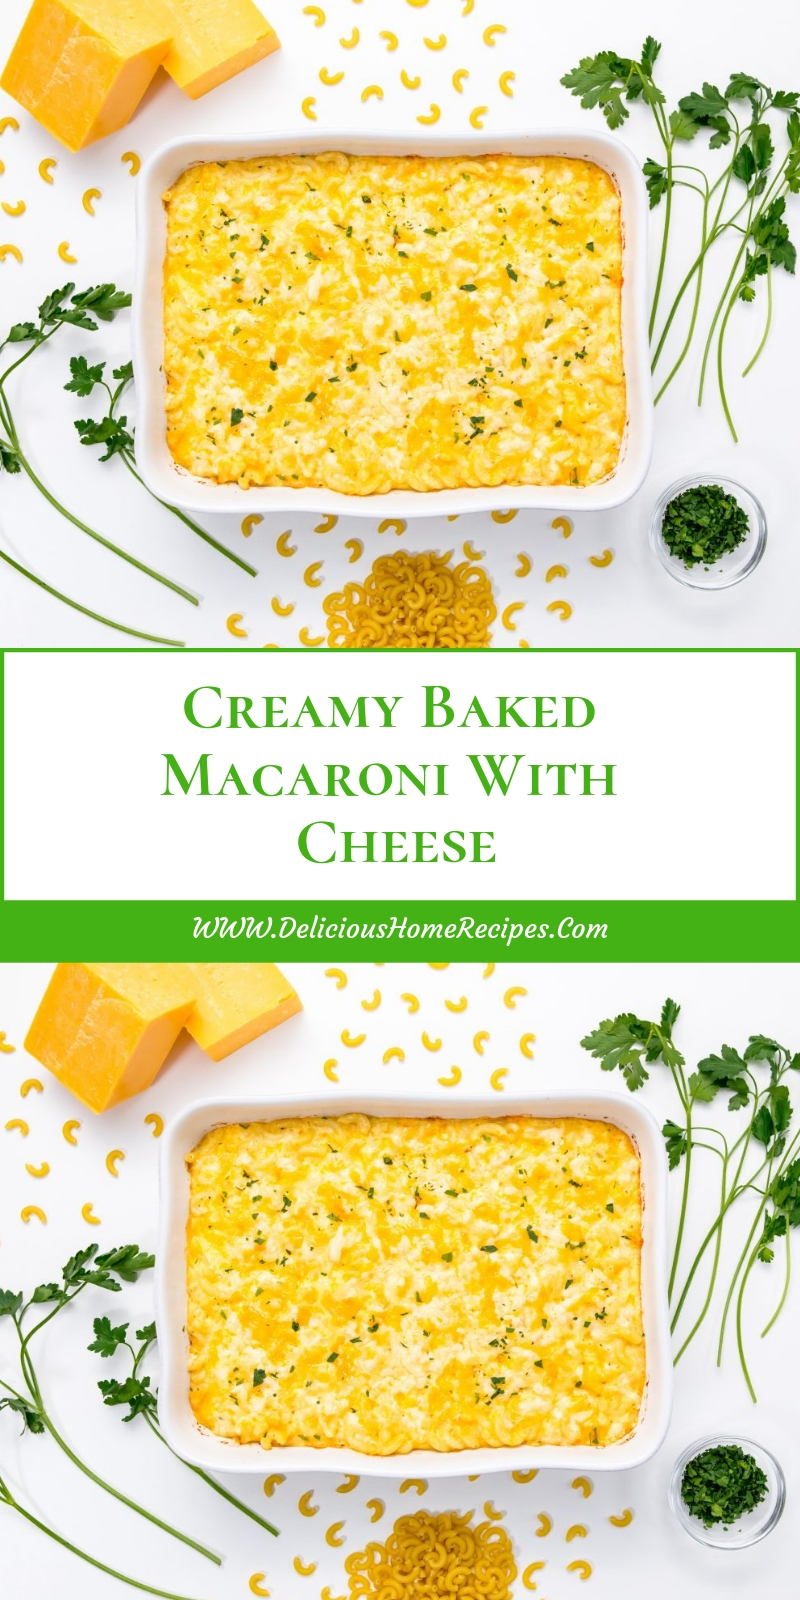 Creamy Baked Macaroni With Cheese